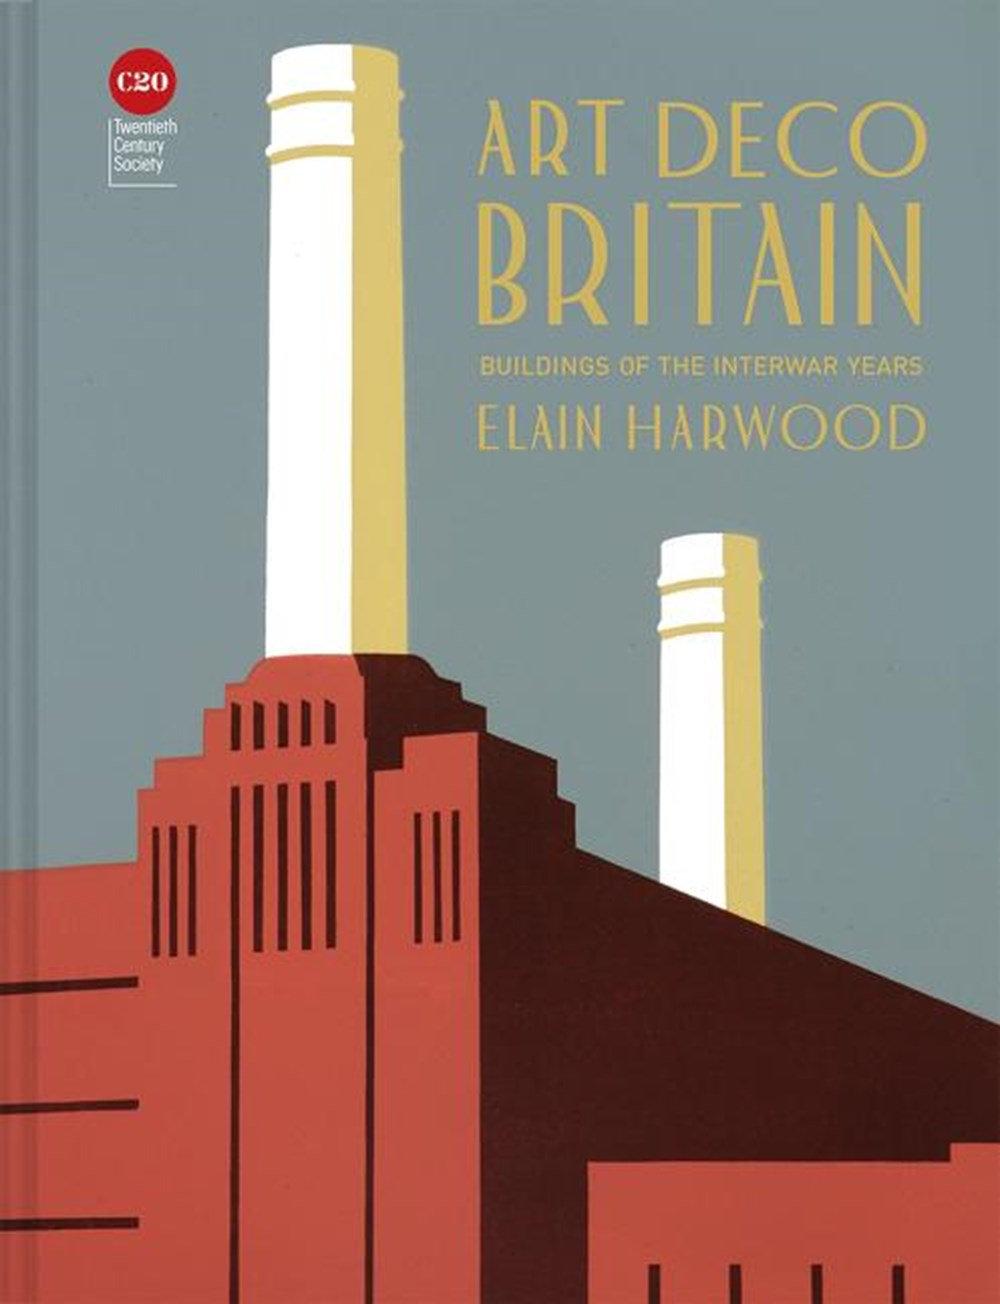 Art Deco Britain Buildings of the Inter-War Years